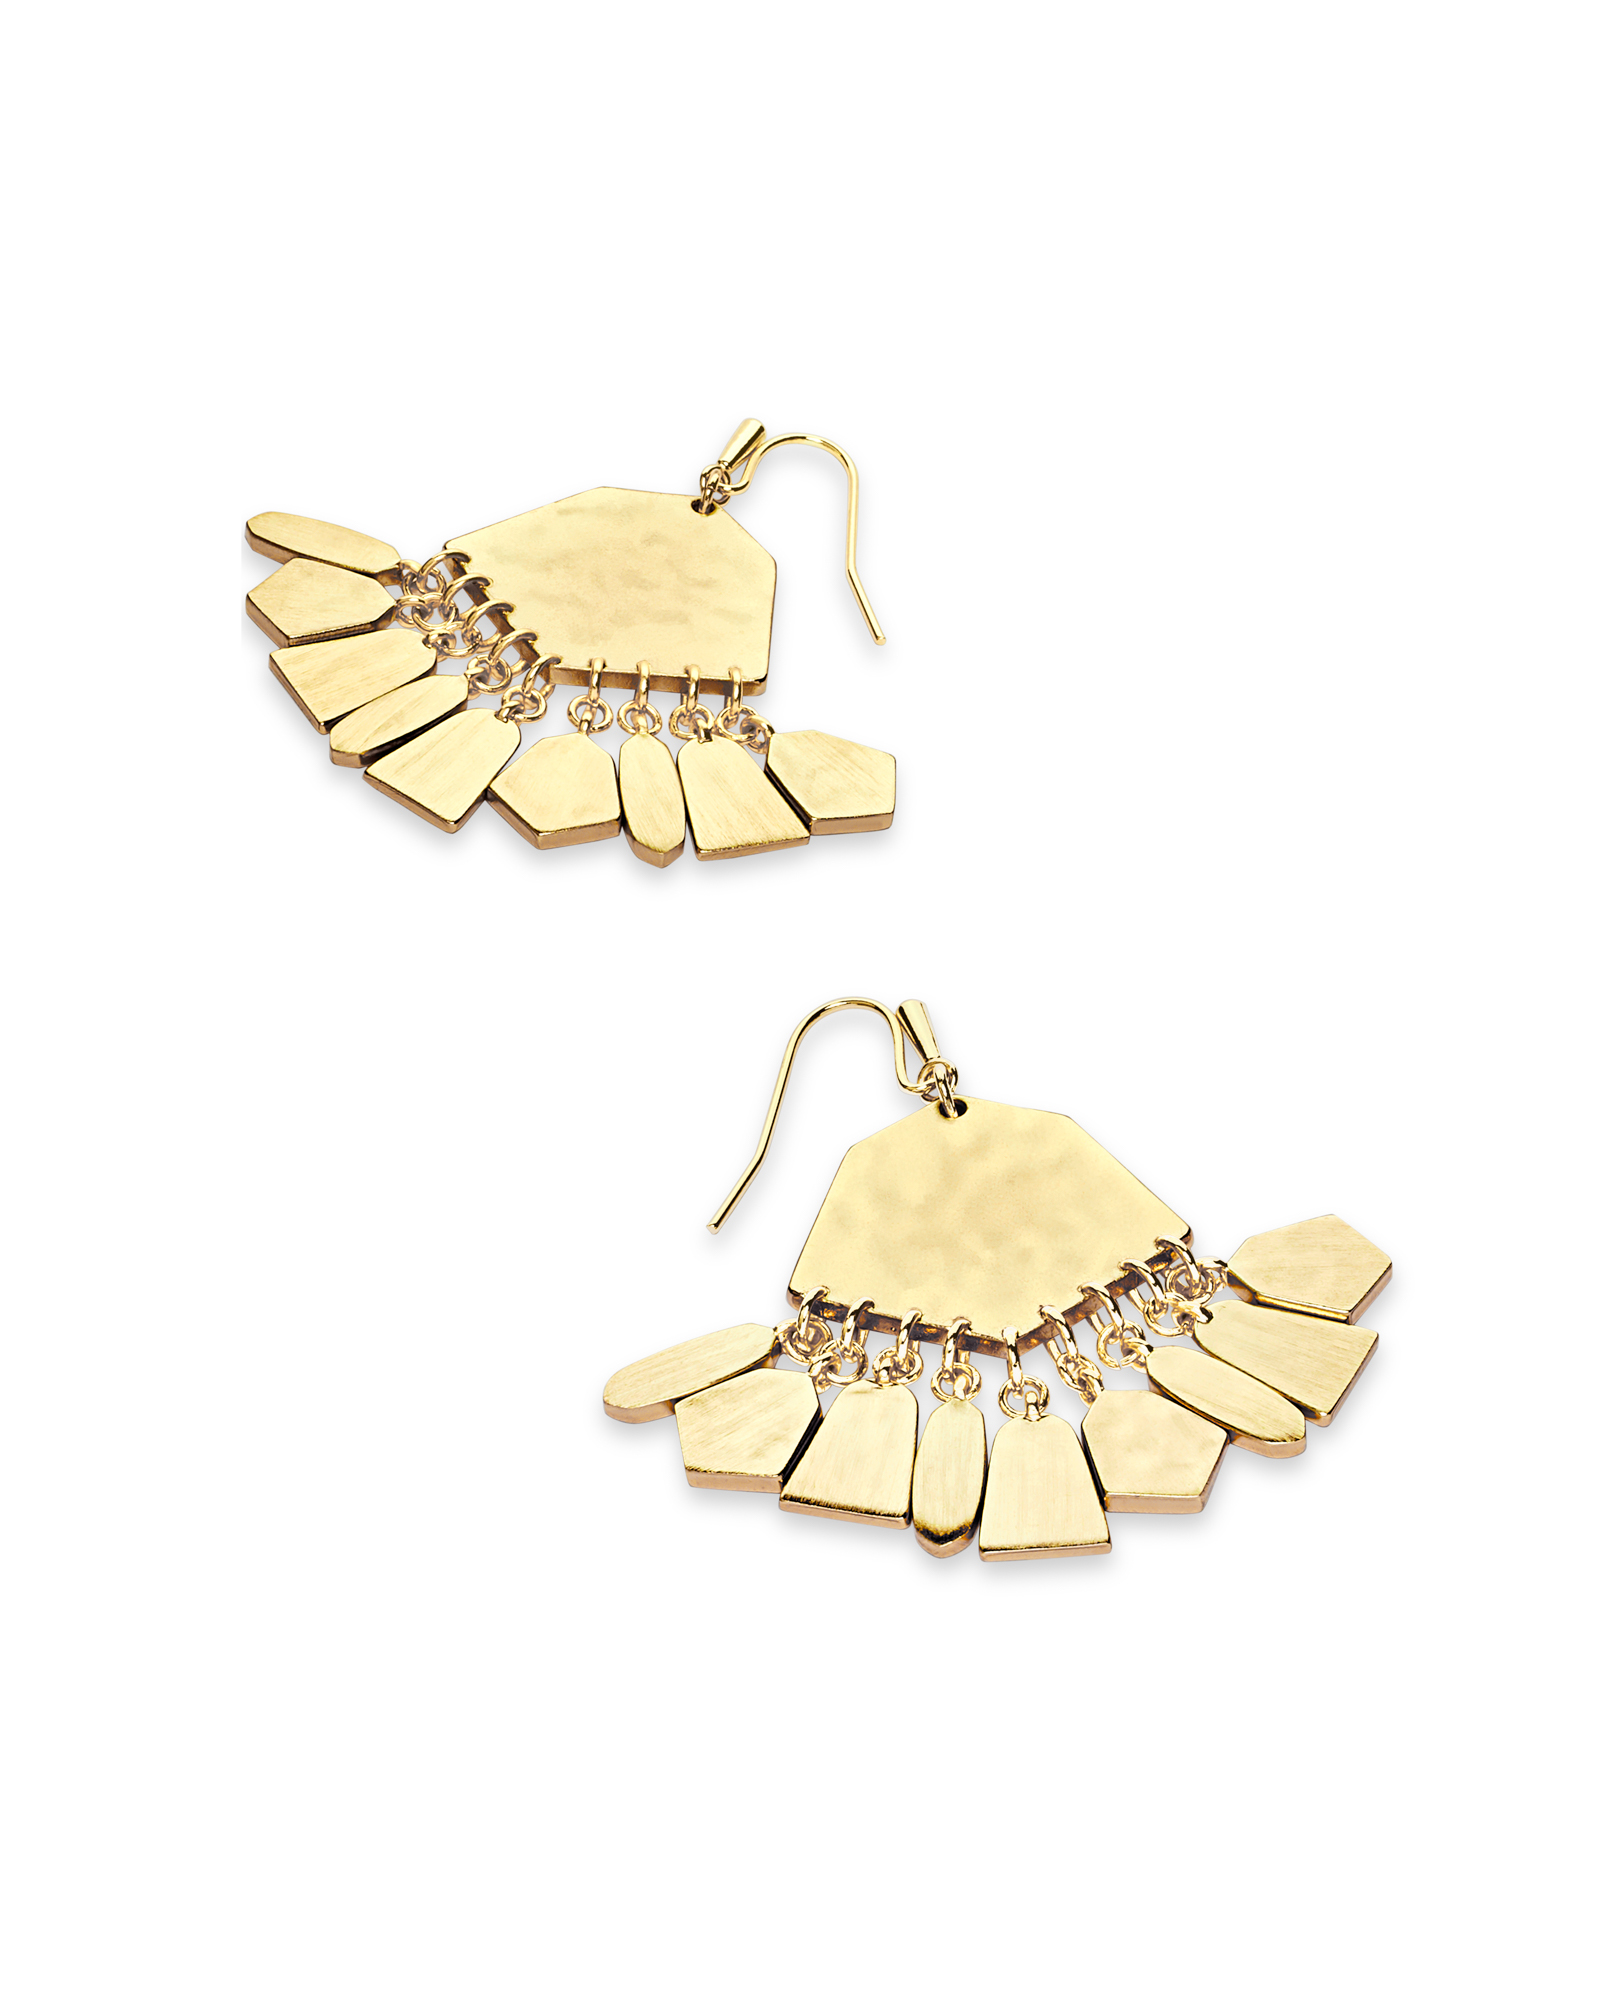 Liz Statement Earrings in Gold